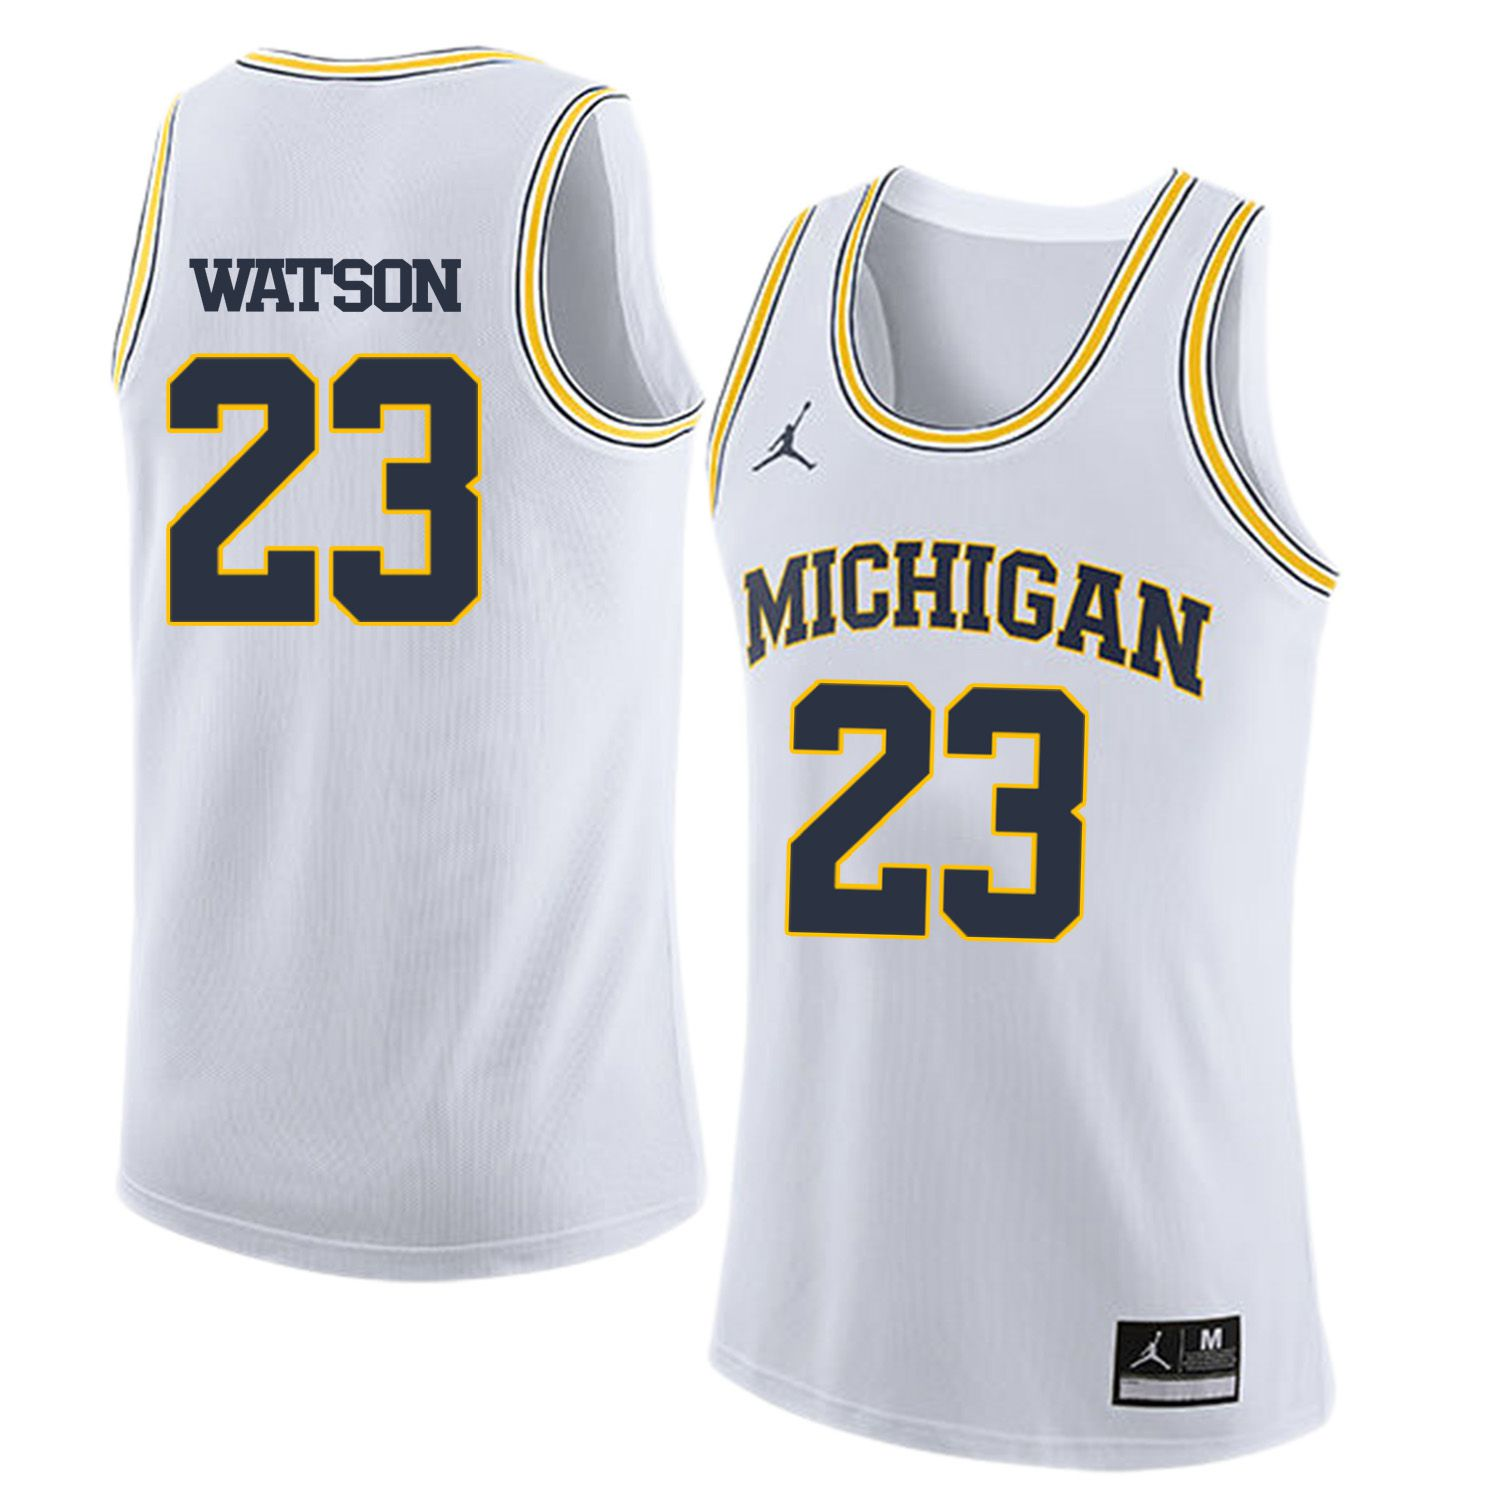 Men Jordan University of Michigan Basketball White 23 Watson Customized NCAA Jerseys